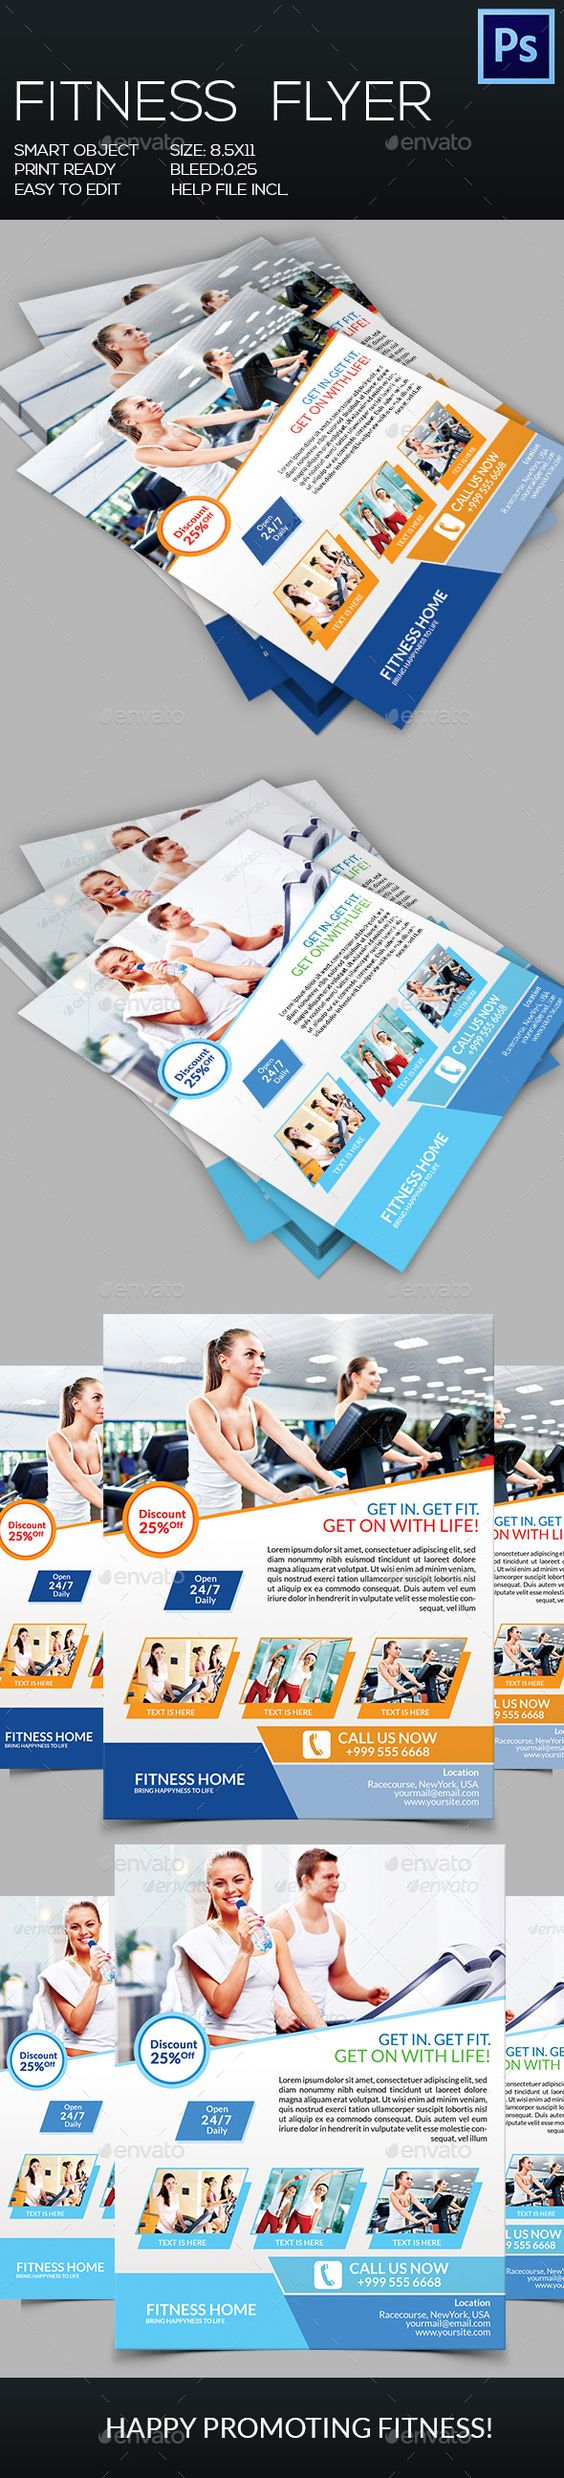 Fitness Flyer Template PSD | Buy and Download: http://graphicriver.net/item/fitness-flyer/8953439?WT.ac=category_thumb&WT.z_author=GreenPixi&ref=ksioks